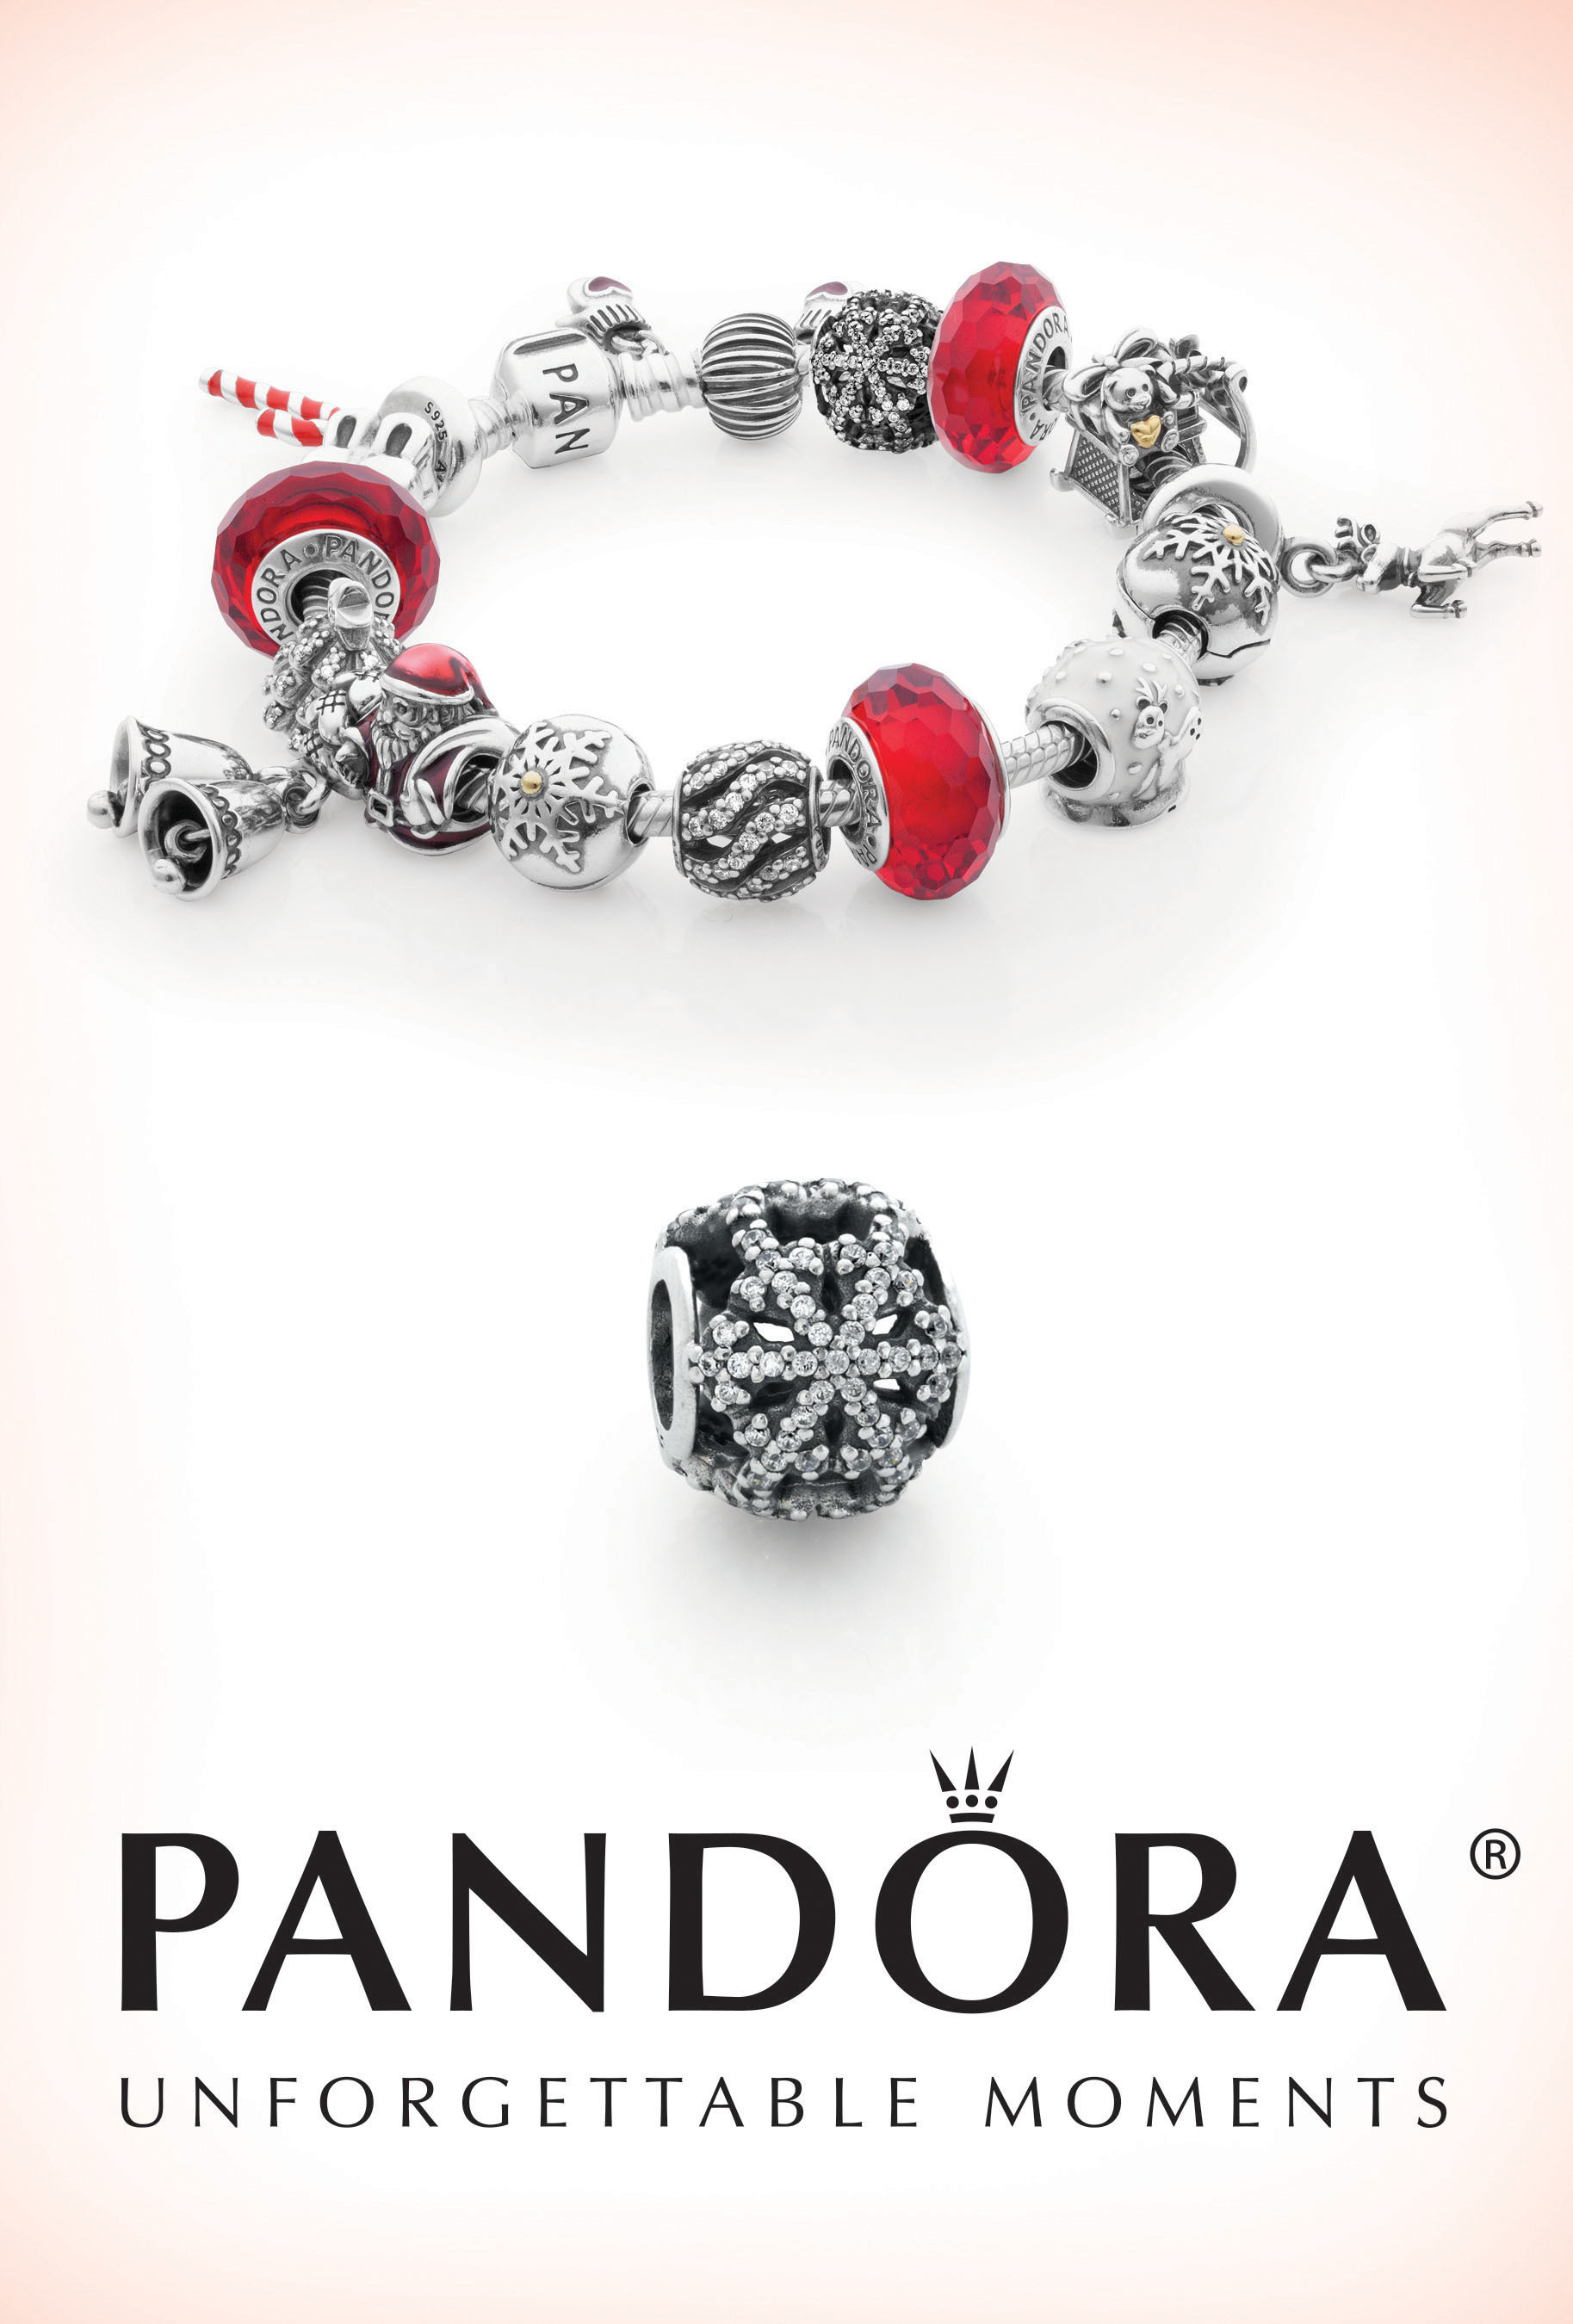 PANDORA Jewelry Debutes Limited Edition Charm for Black Friday